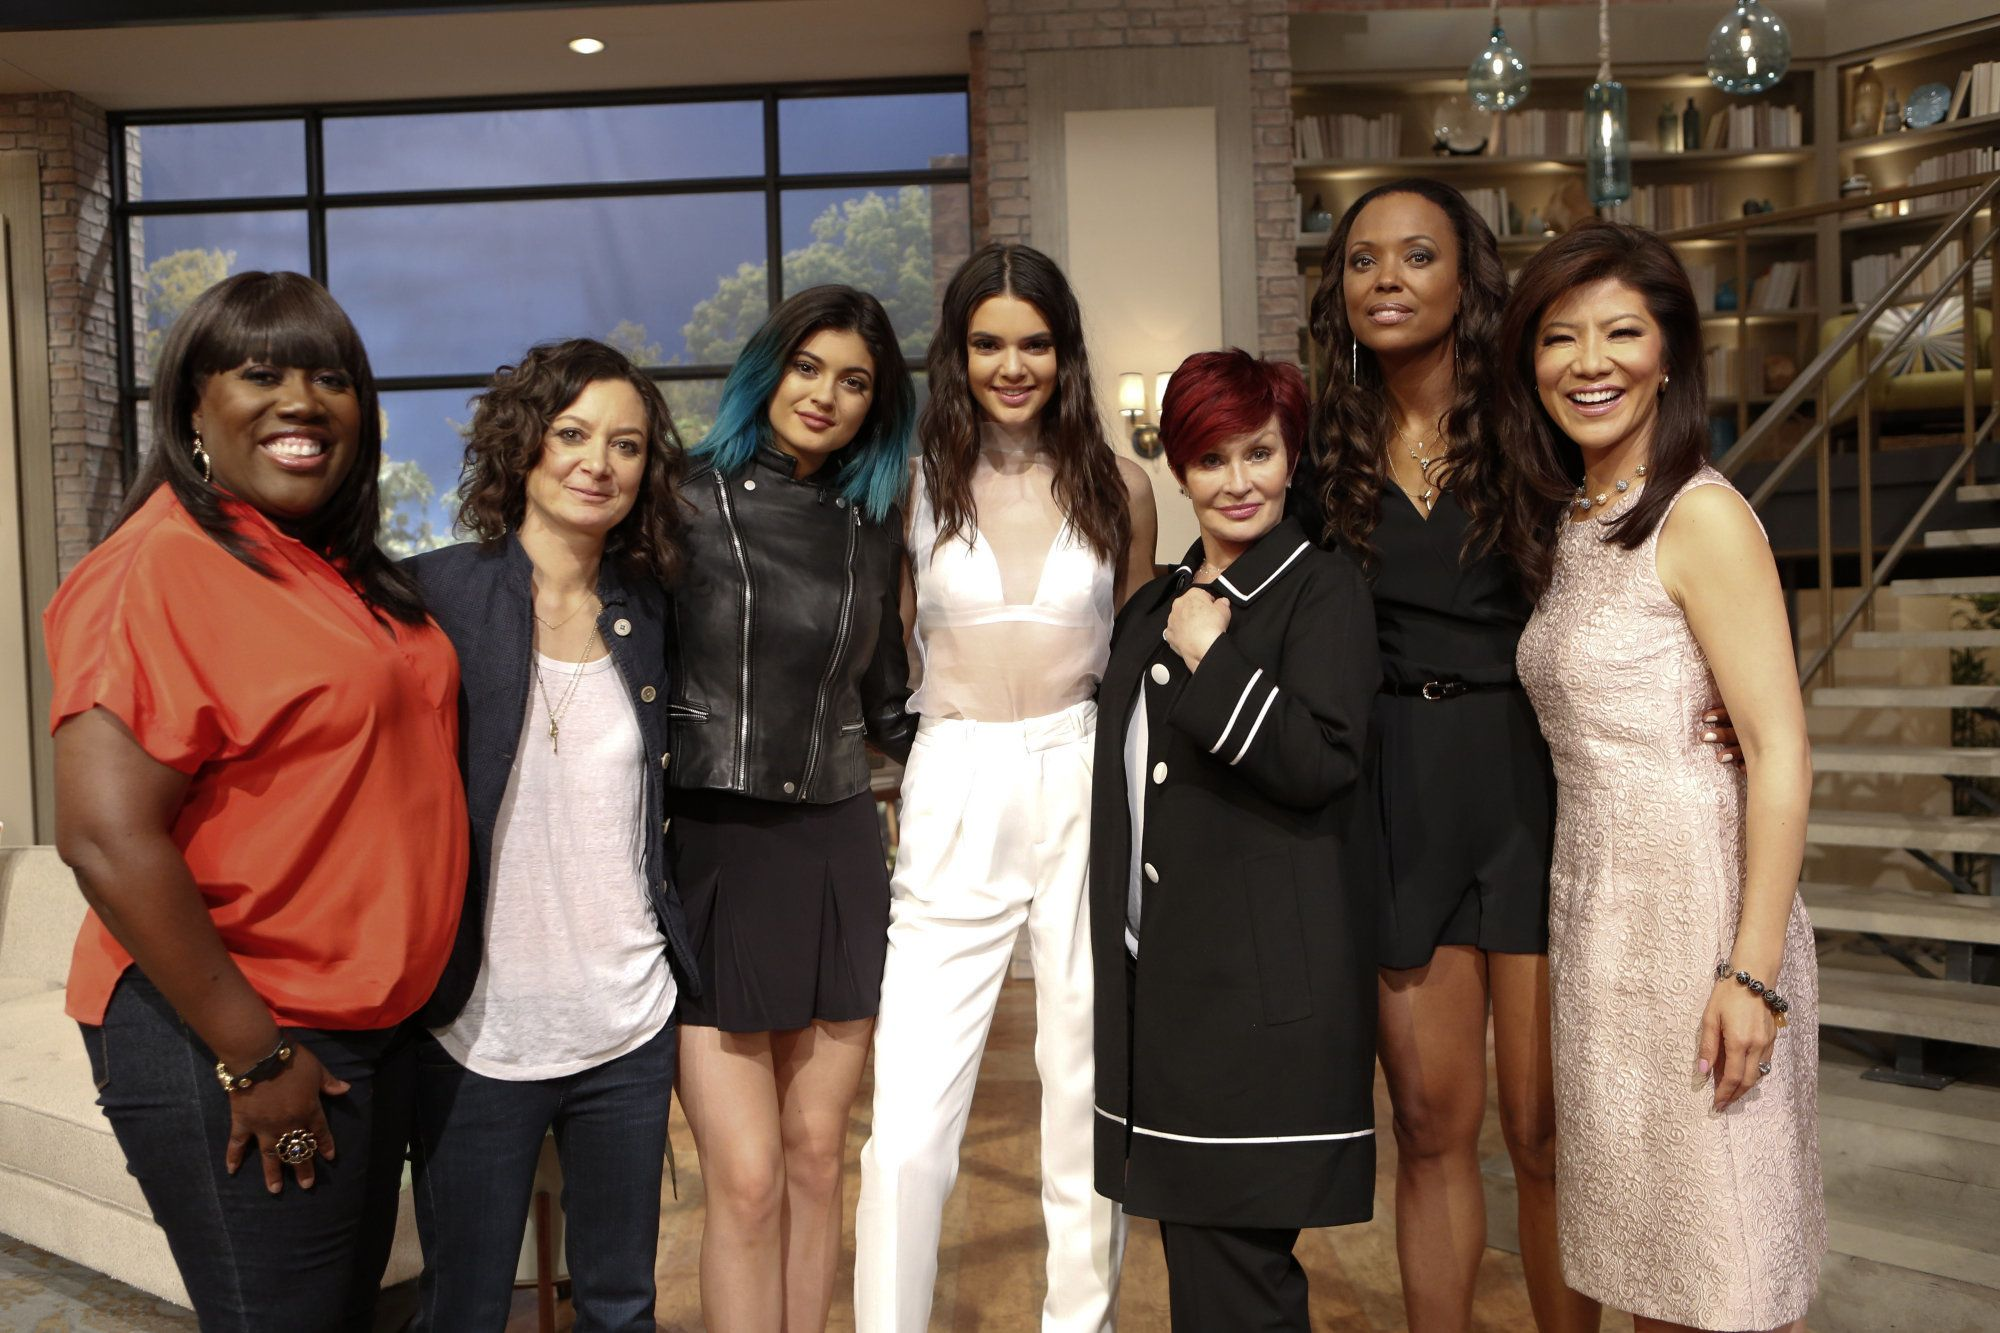 LOS ANGELES - JUNE 12: Reality stars and authors Kendall and Kylie Jenner discuss their new book on THE TALK Friday, June 13, 2014 on the CBS Television Network. From left, Sheryl Underwood, Sara Gilbert, Kylie Jenner, Kendall Jenner, Sharon Osbourne, Aisha Tyler and Julie Chen, shown. (Photo by Cliff Lipson/CBS via Getty Images)